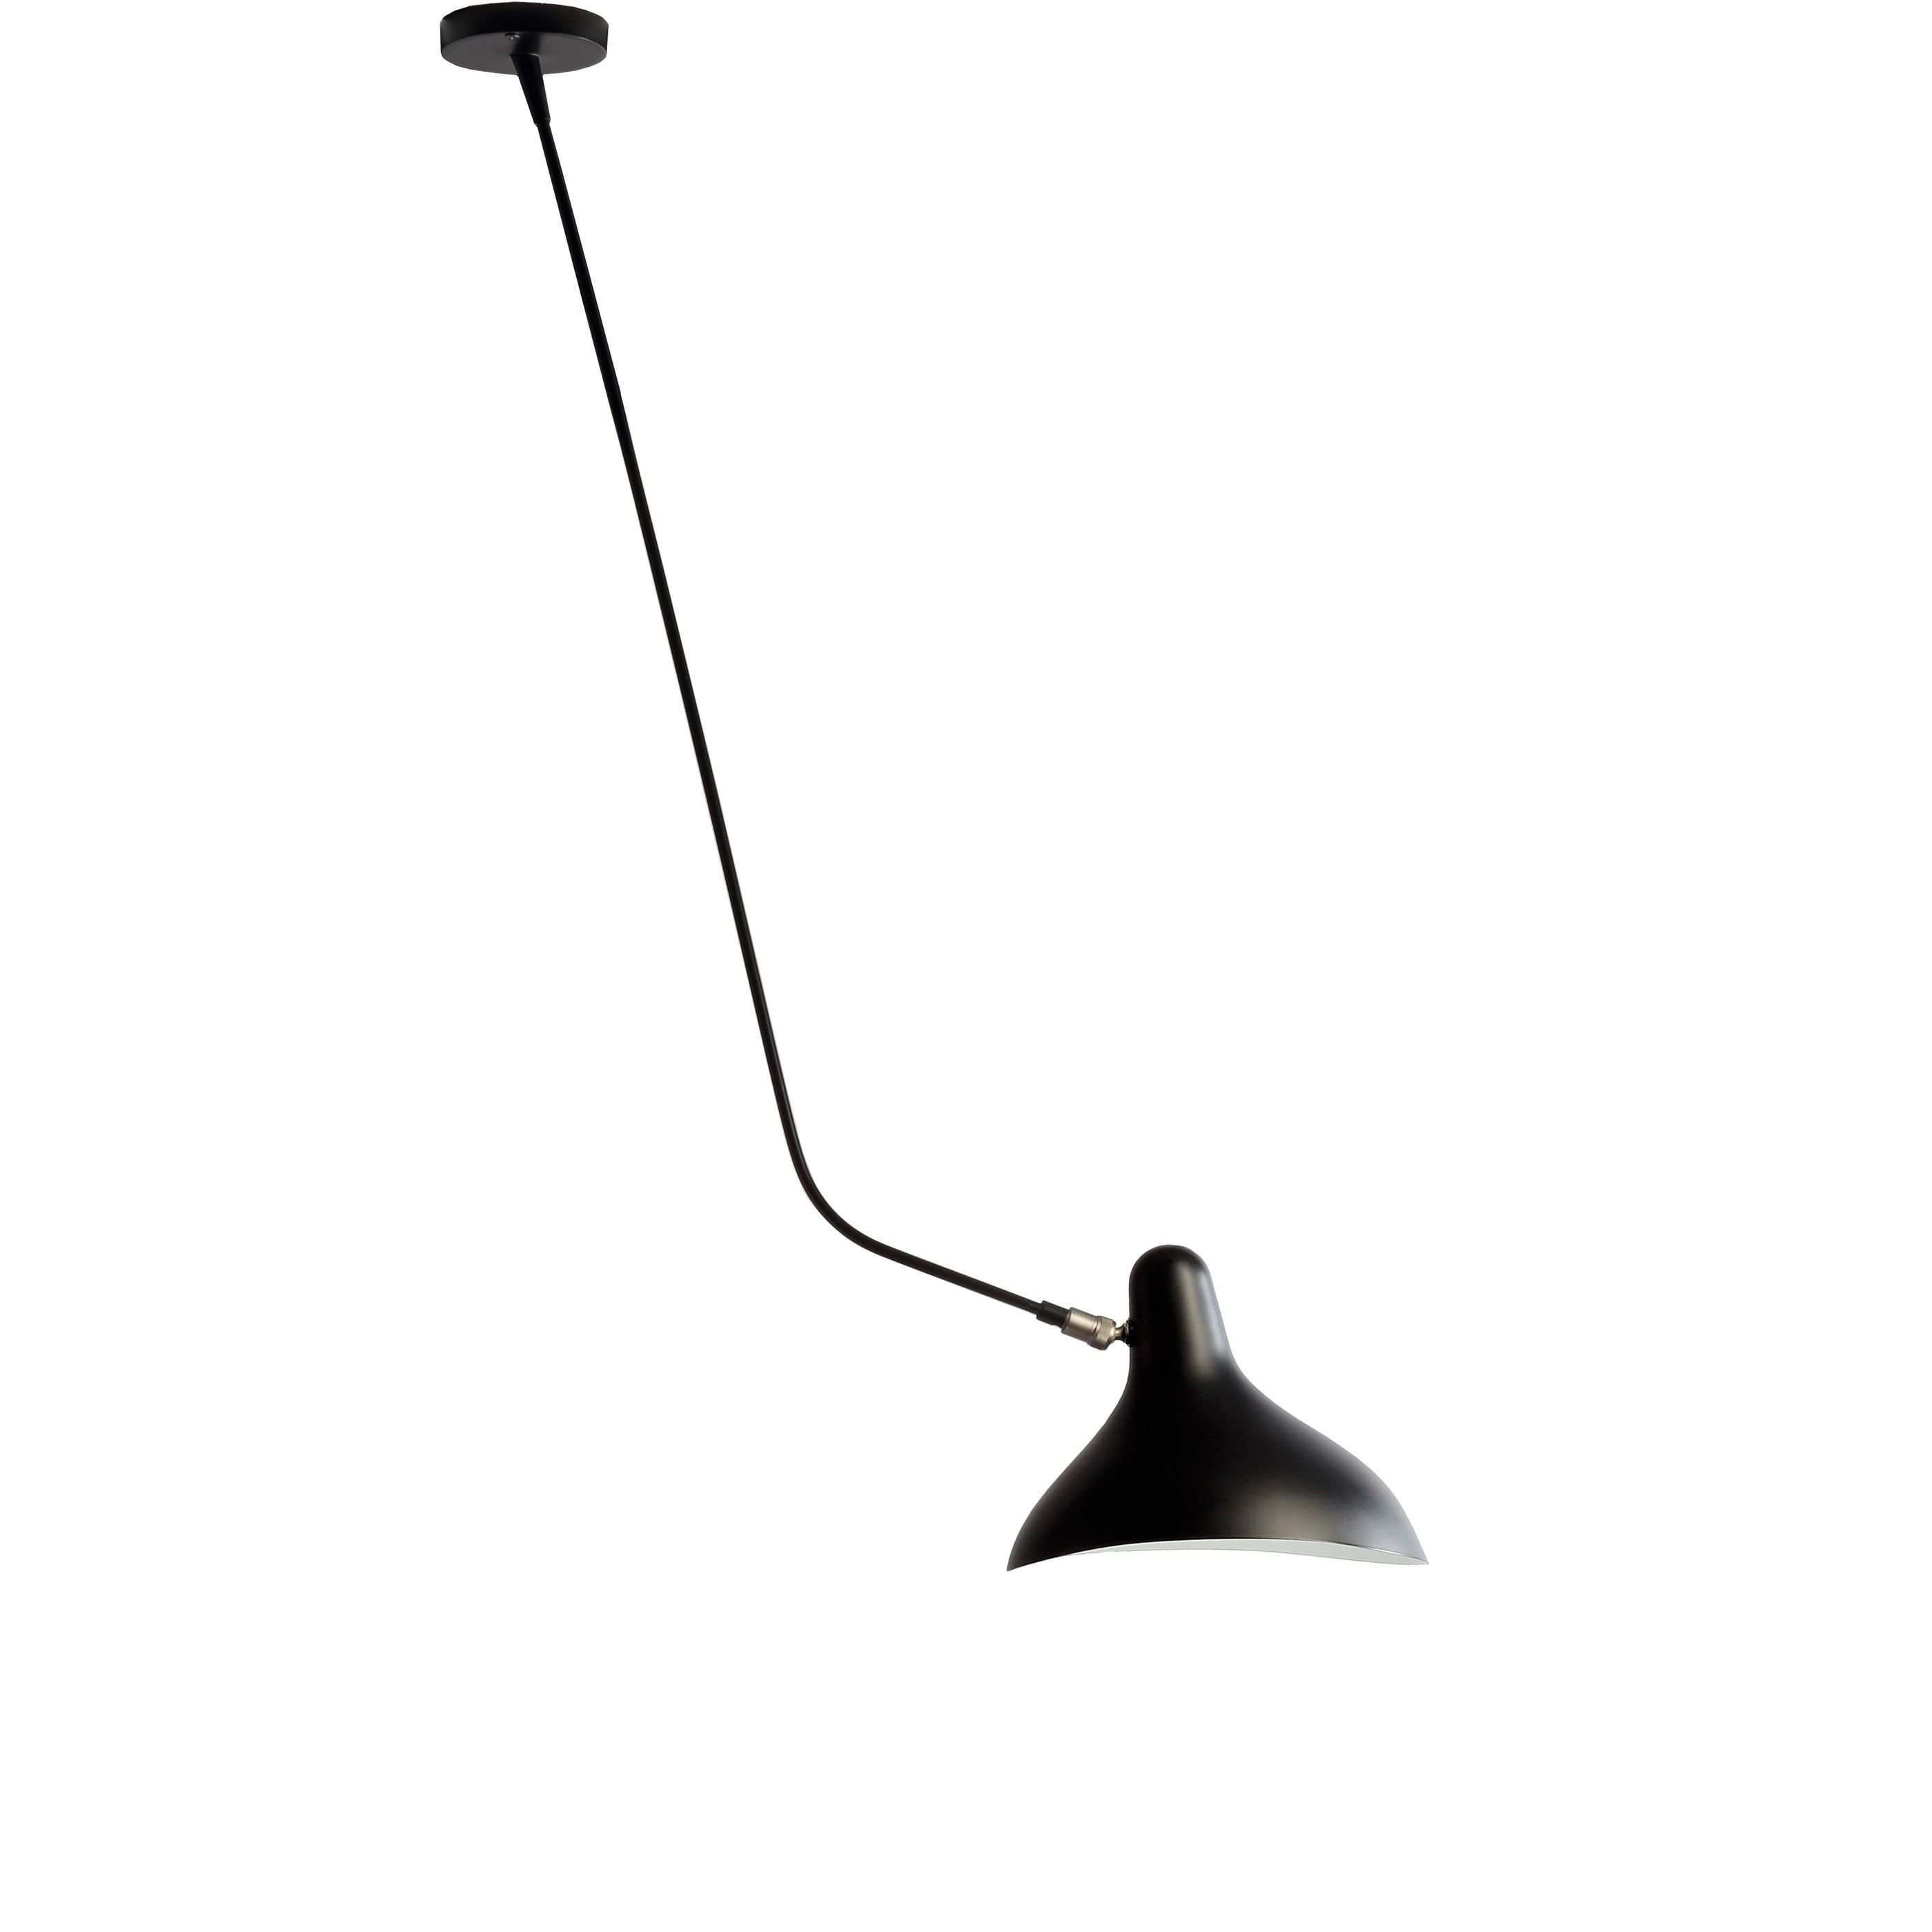 dcw ditions lampe mantis bs4 plafondlamp flinders verzendt gratis. Black Bedroom Furniture Sets. Home Design Ideas